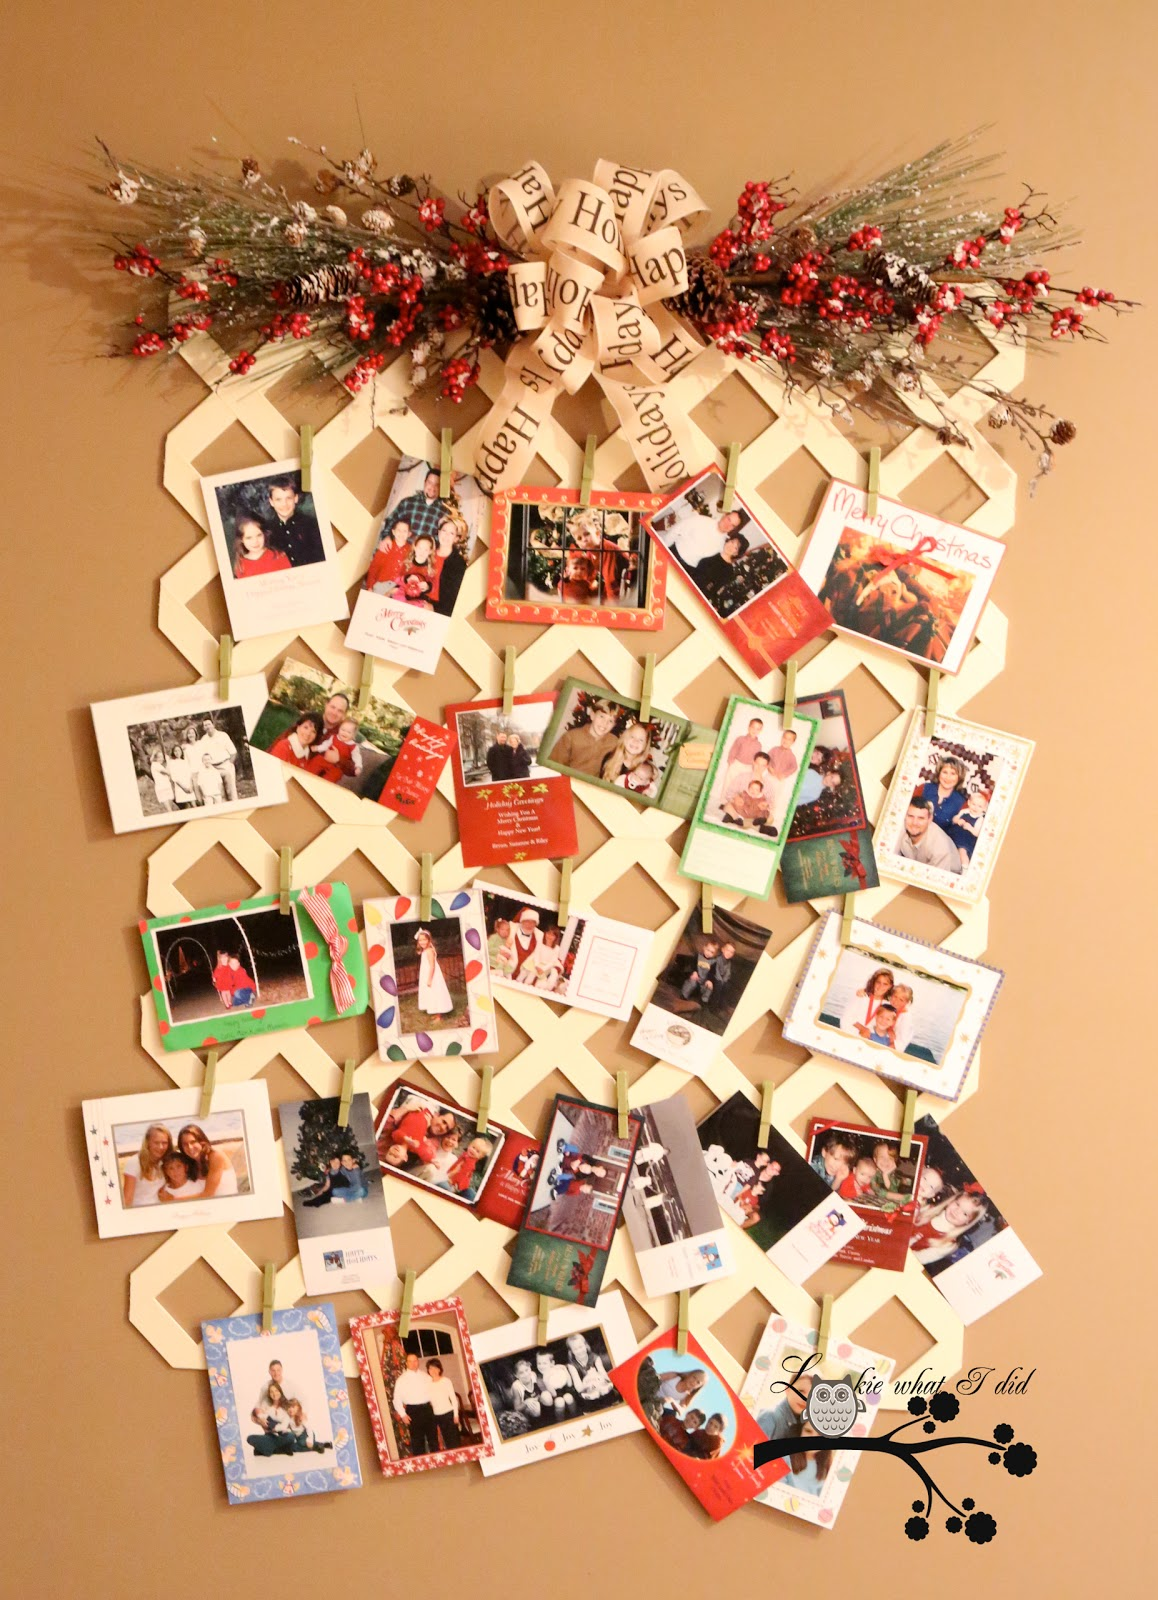 Red hen home christmas in july lattice christmas card display - Christmas card wall holder ...